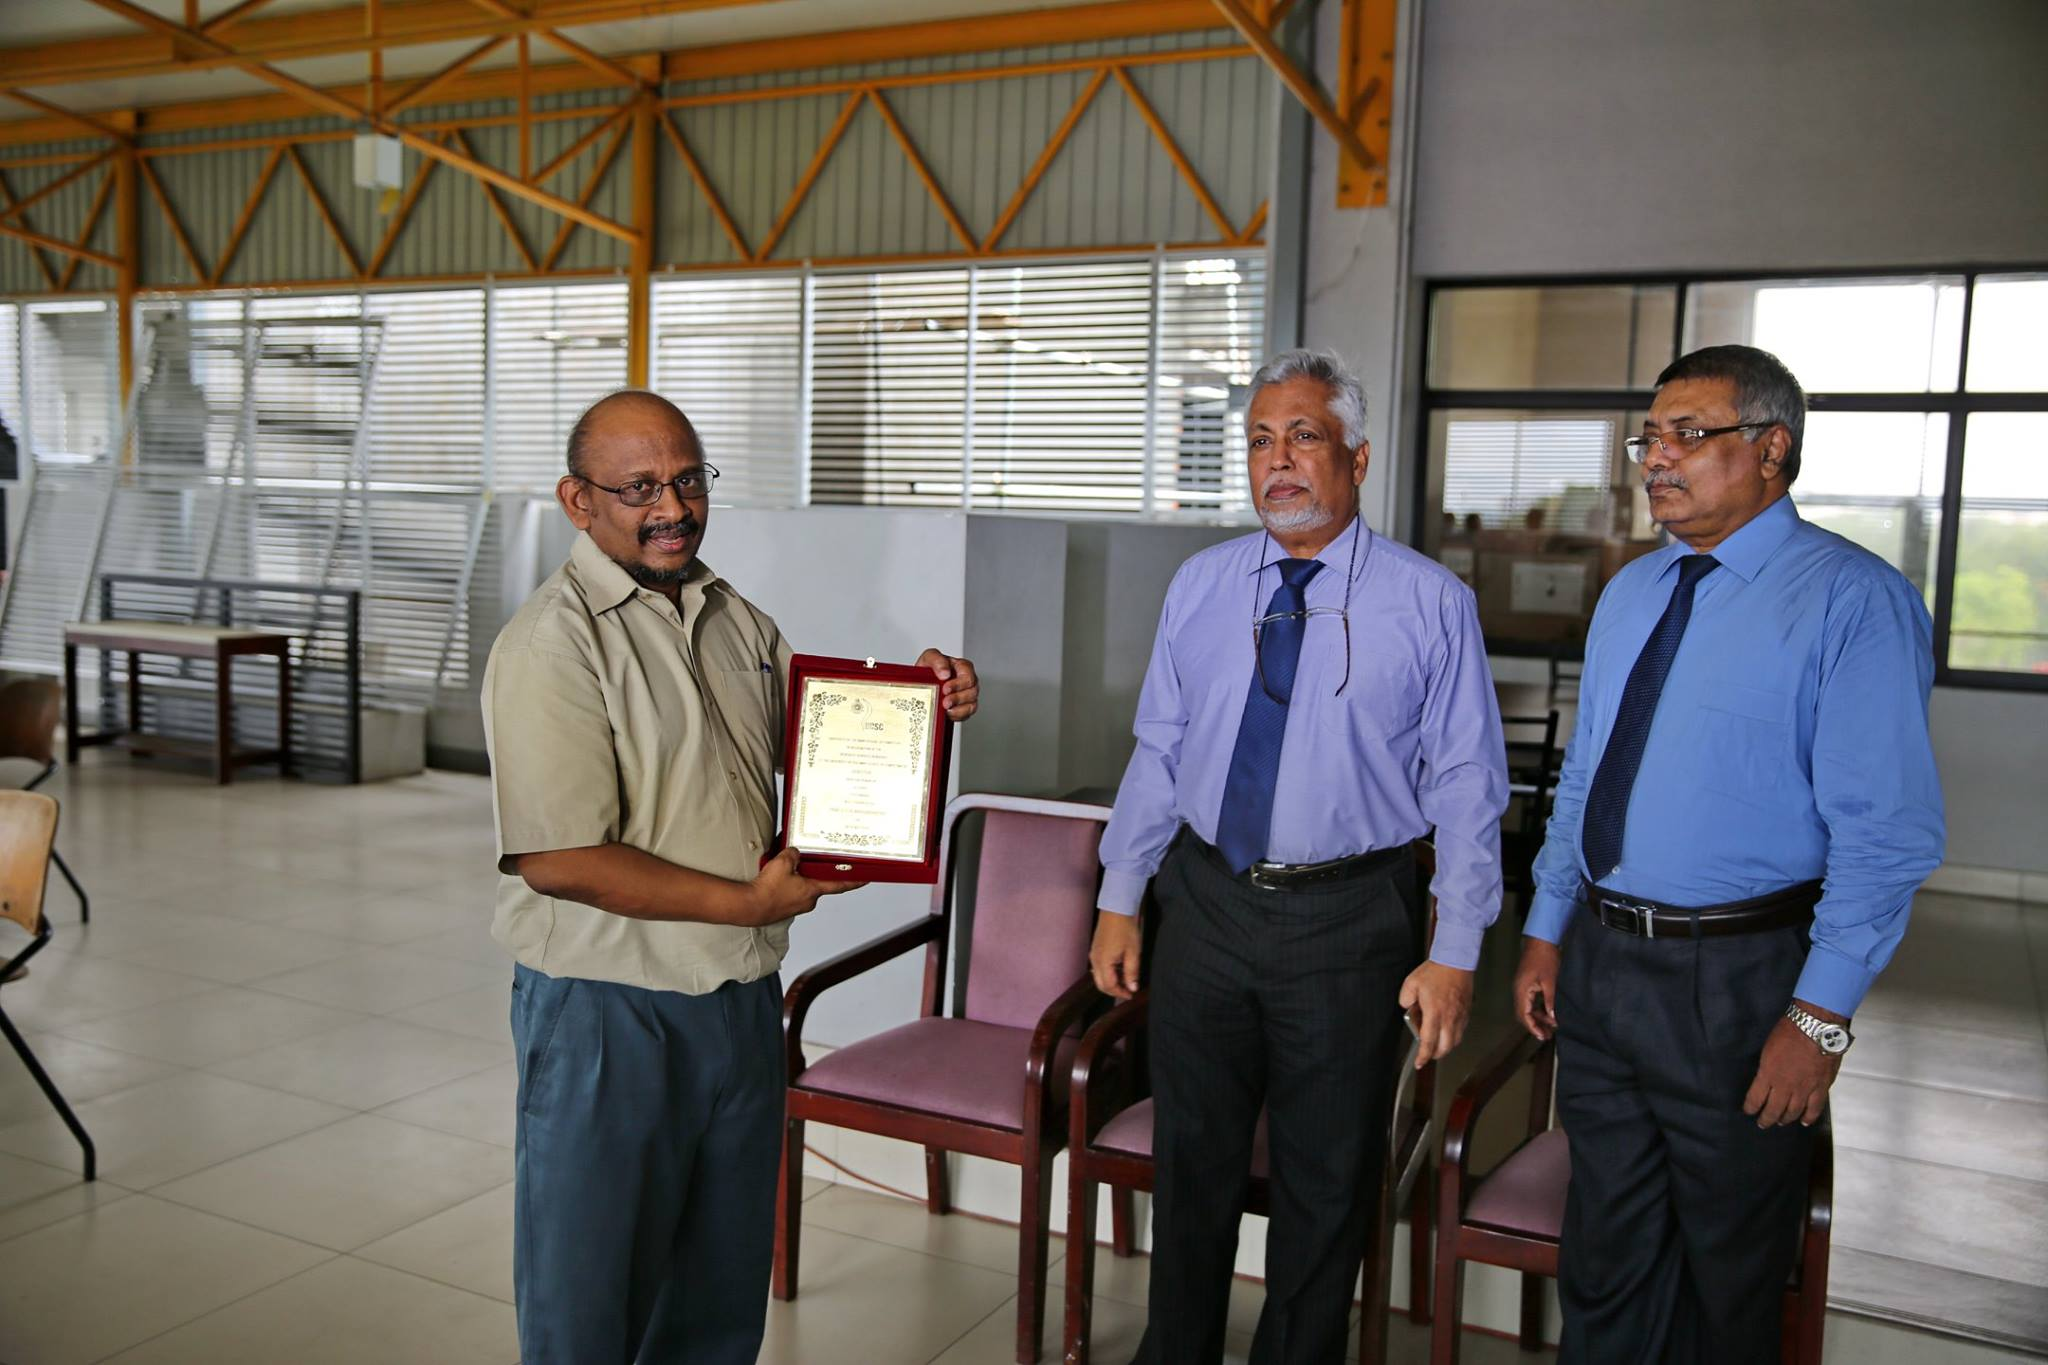 Service Appreciation of Professor Gihan Wikramanayake